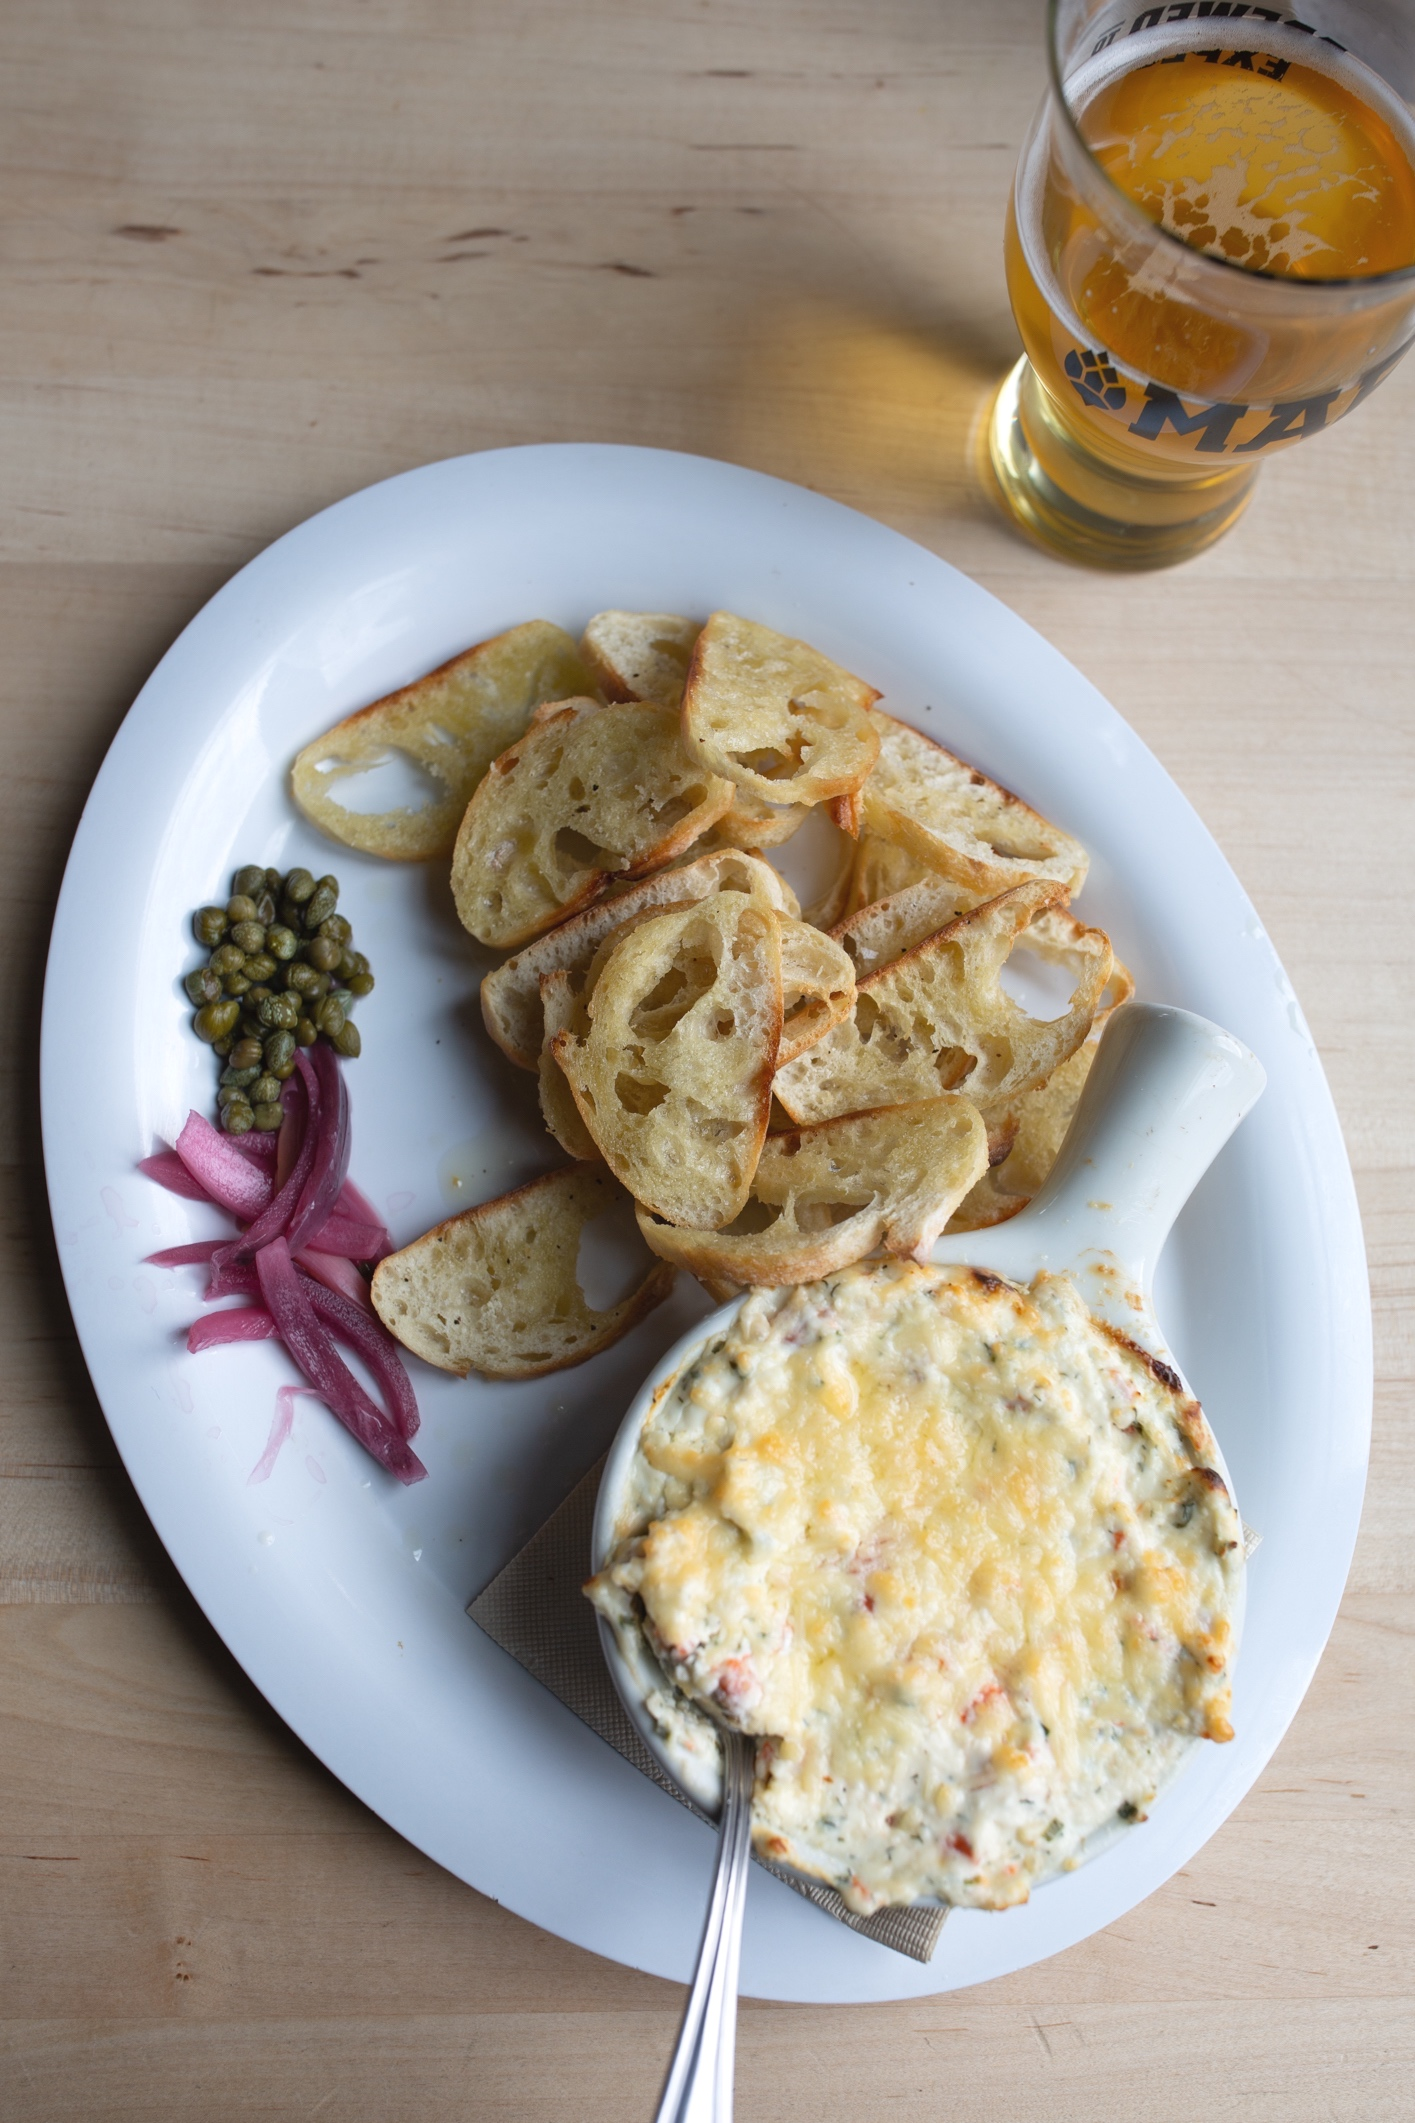 MAP+brewing+company+bozeman+montana+smoked+salmon+dip